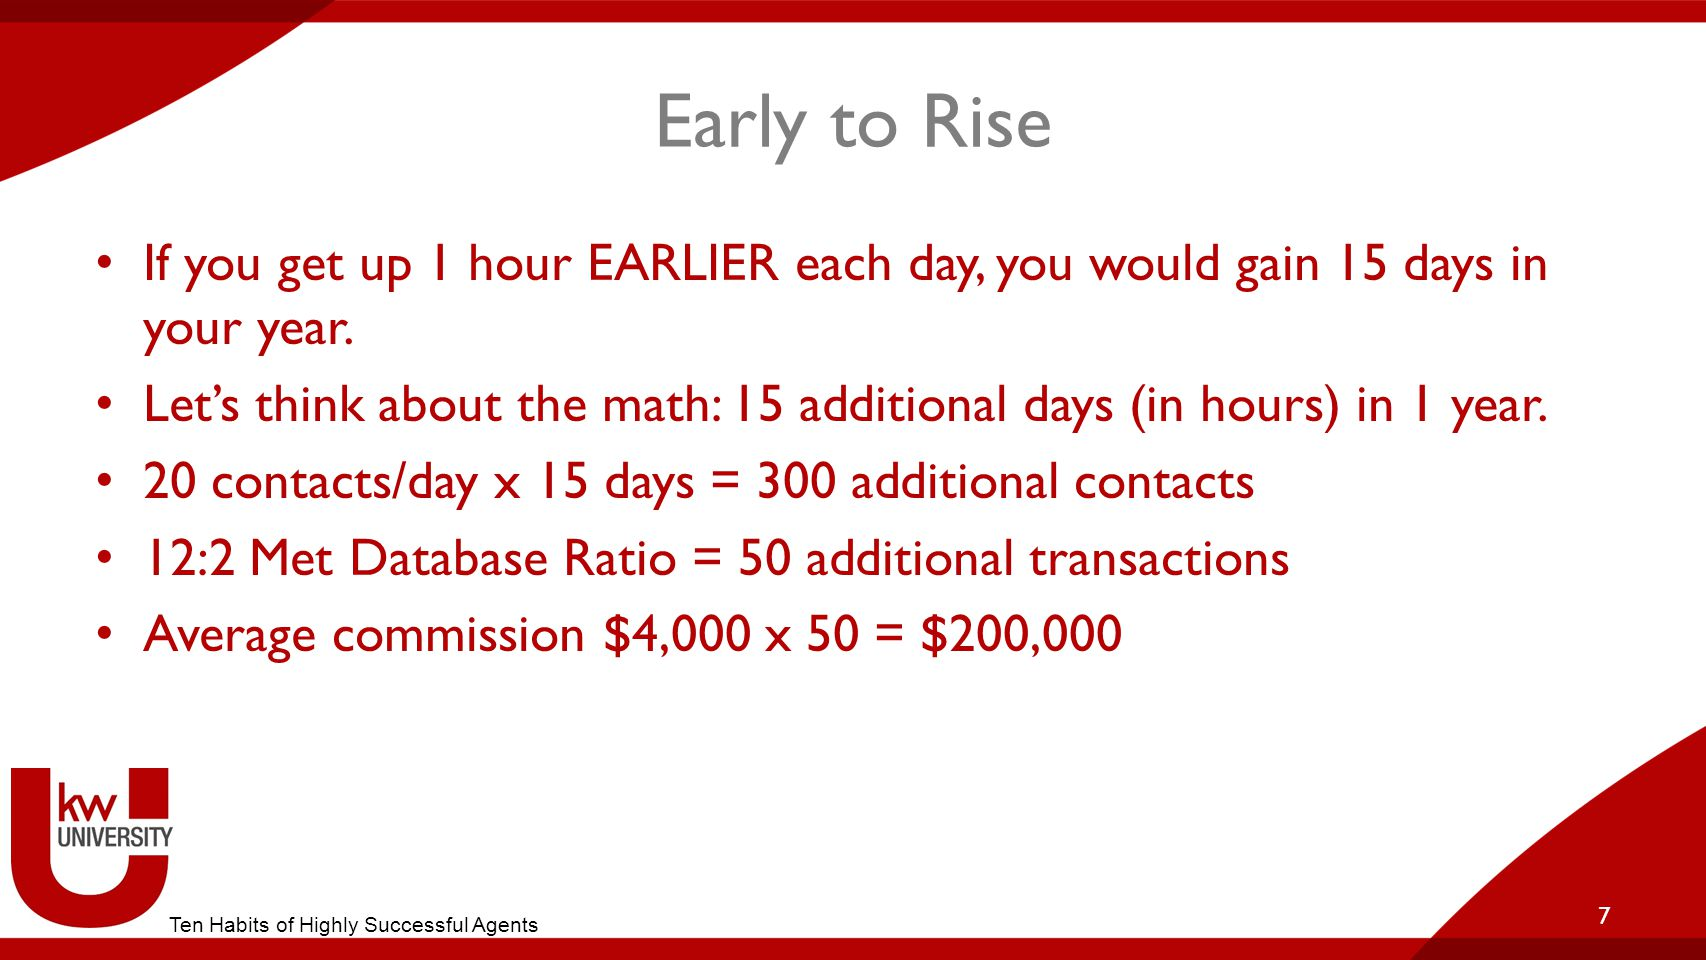 Title of Breakout Early to Rise. If you get up 1 hour EARLIER each day, you would gain 15 days in your year.